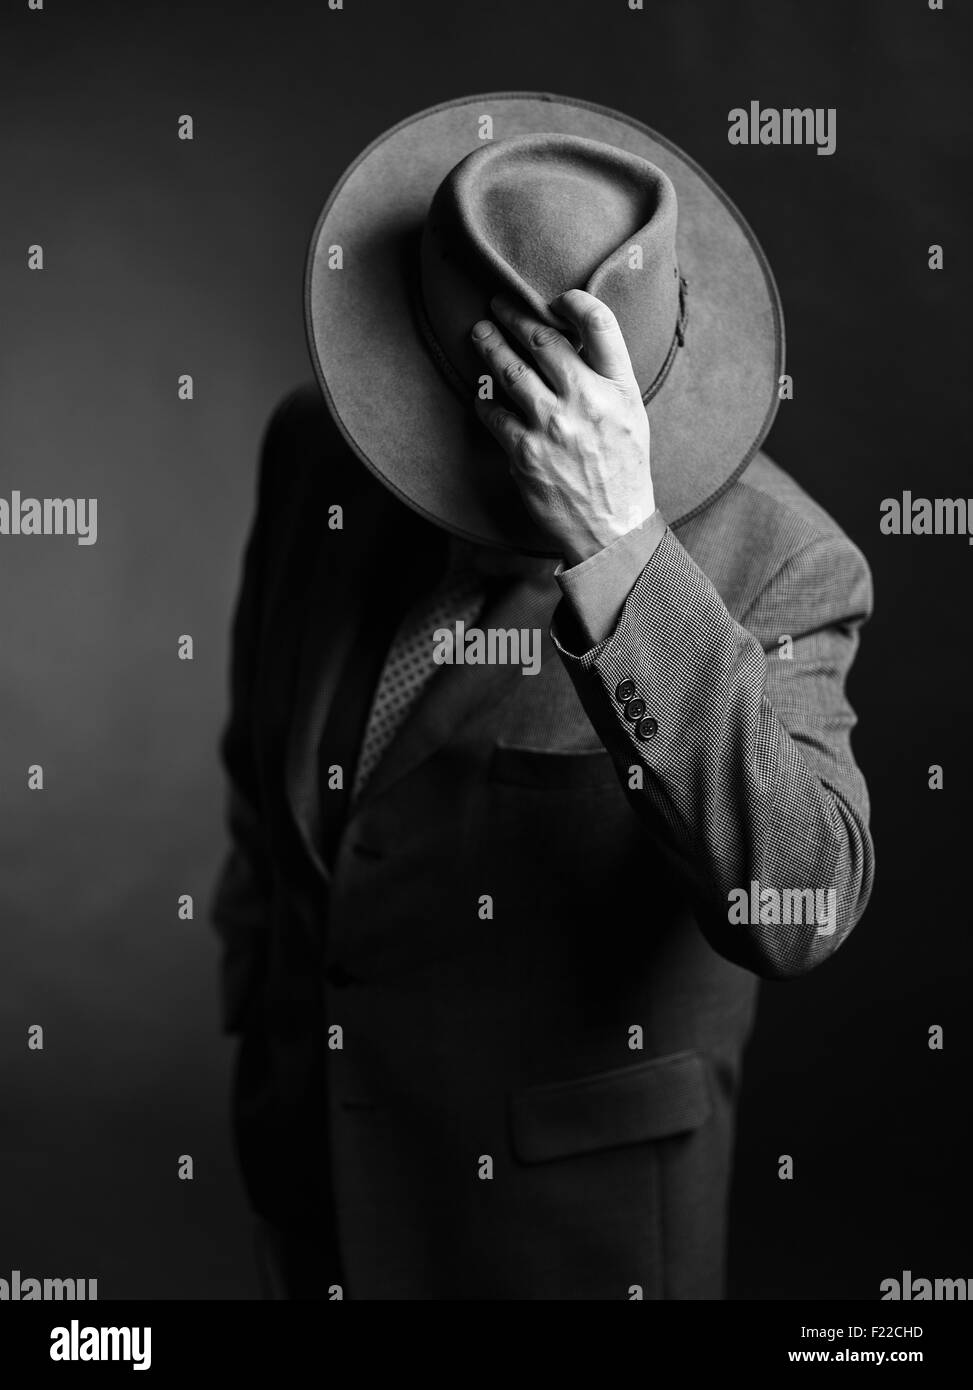 Male wearing dark suit and he covering face with a hat, black and white image - Stock Image